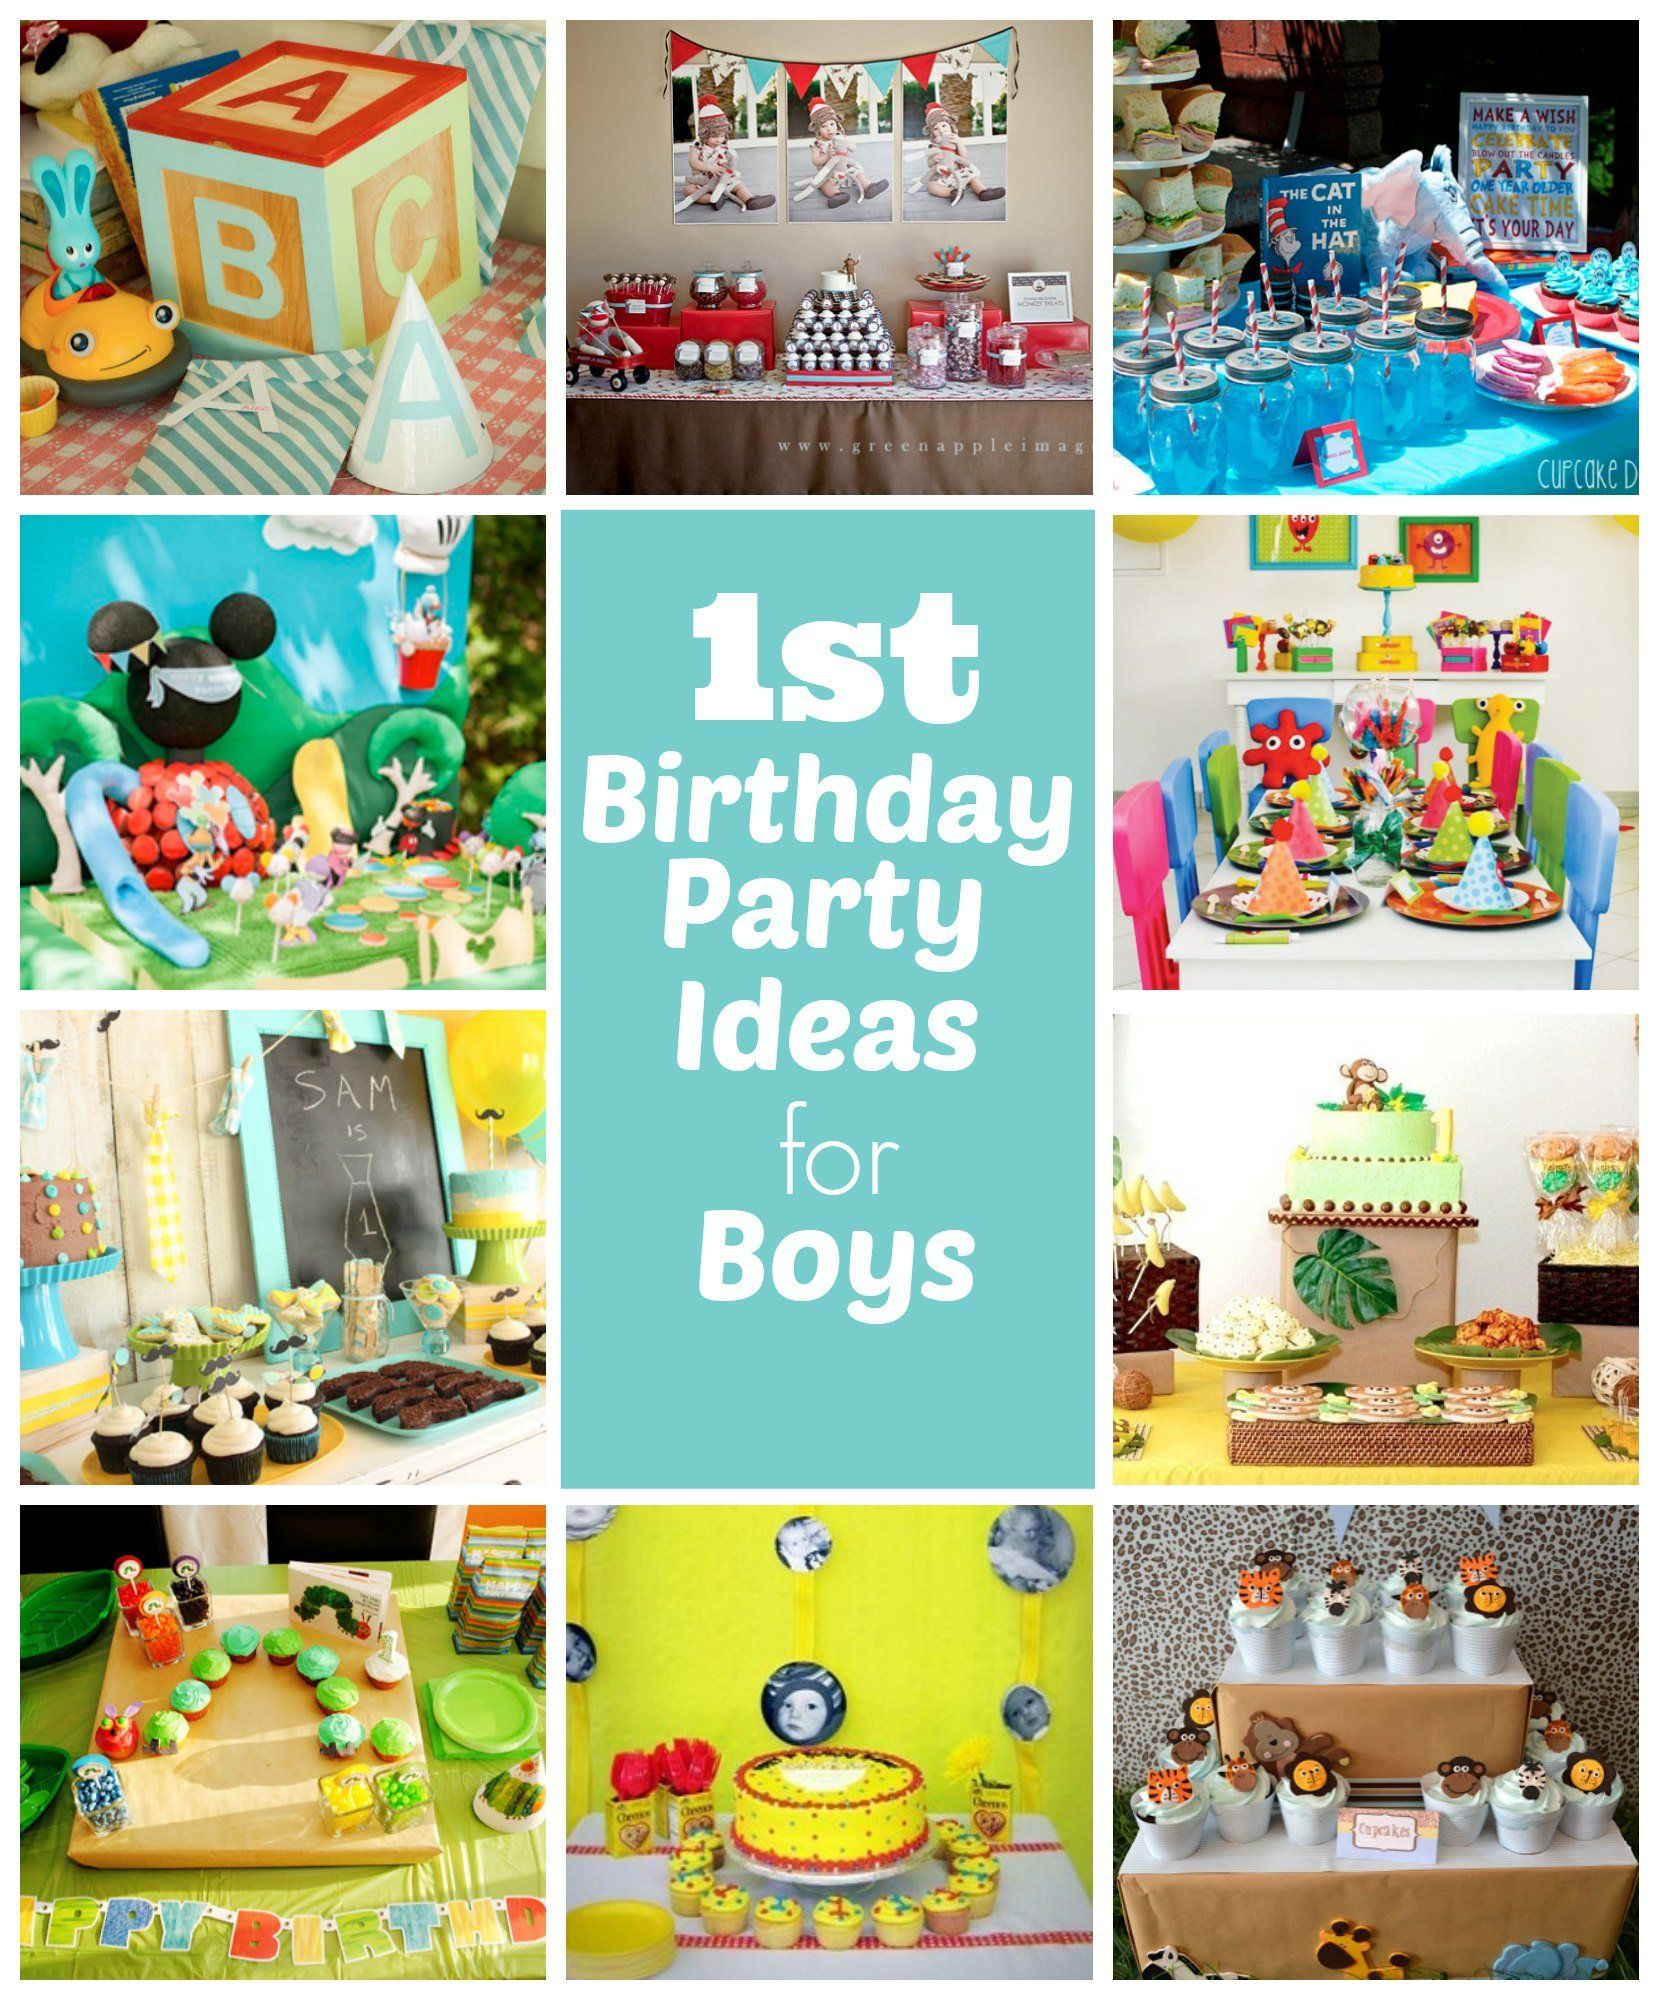 1st Birthday Party Ideas for Boys Right Start Blog Kid things